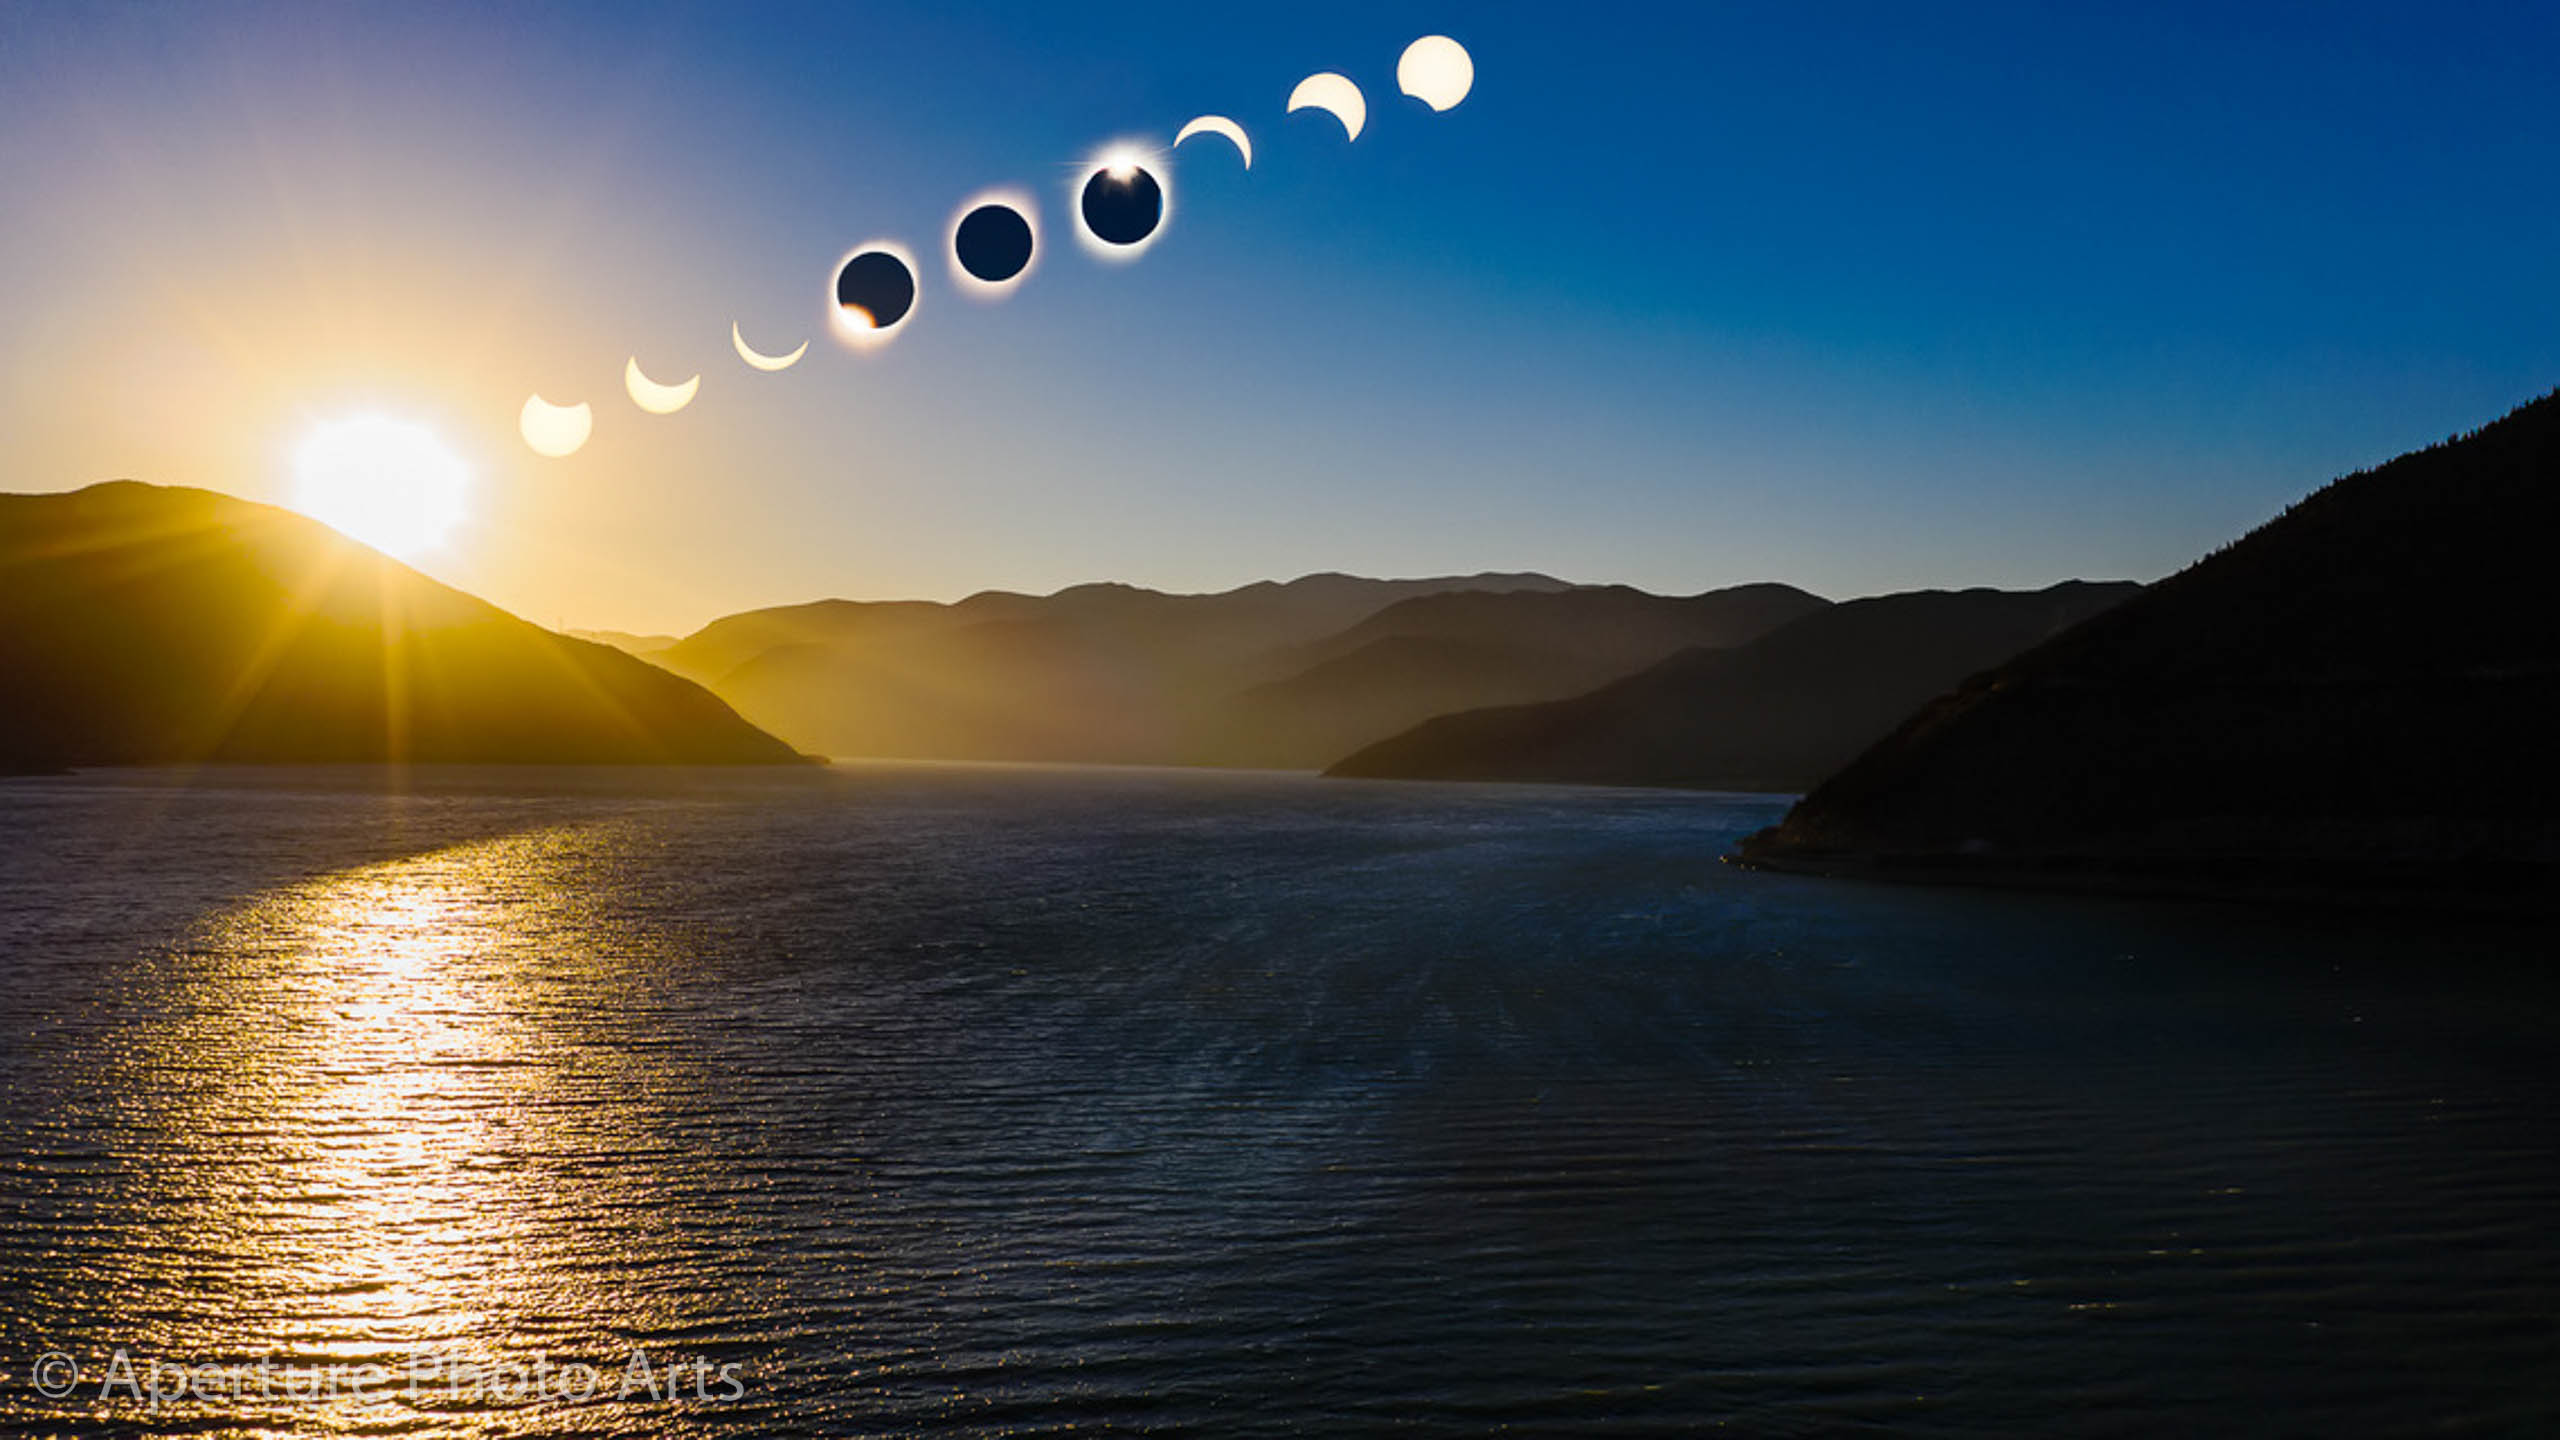 Composite of total solar eclipse of July 2, 2019 passing over Puclaro in the Elqui Valley of Chile